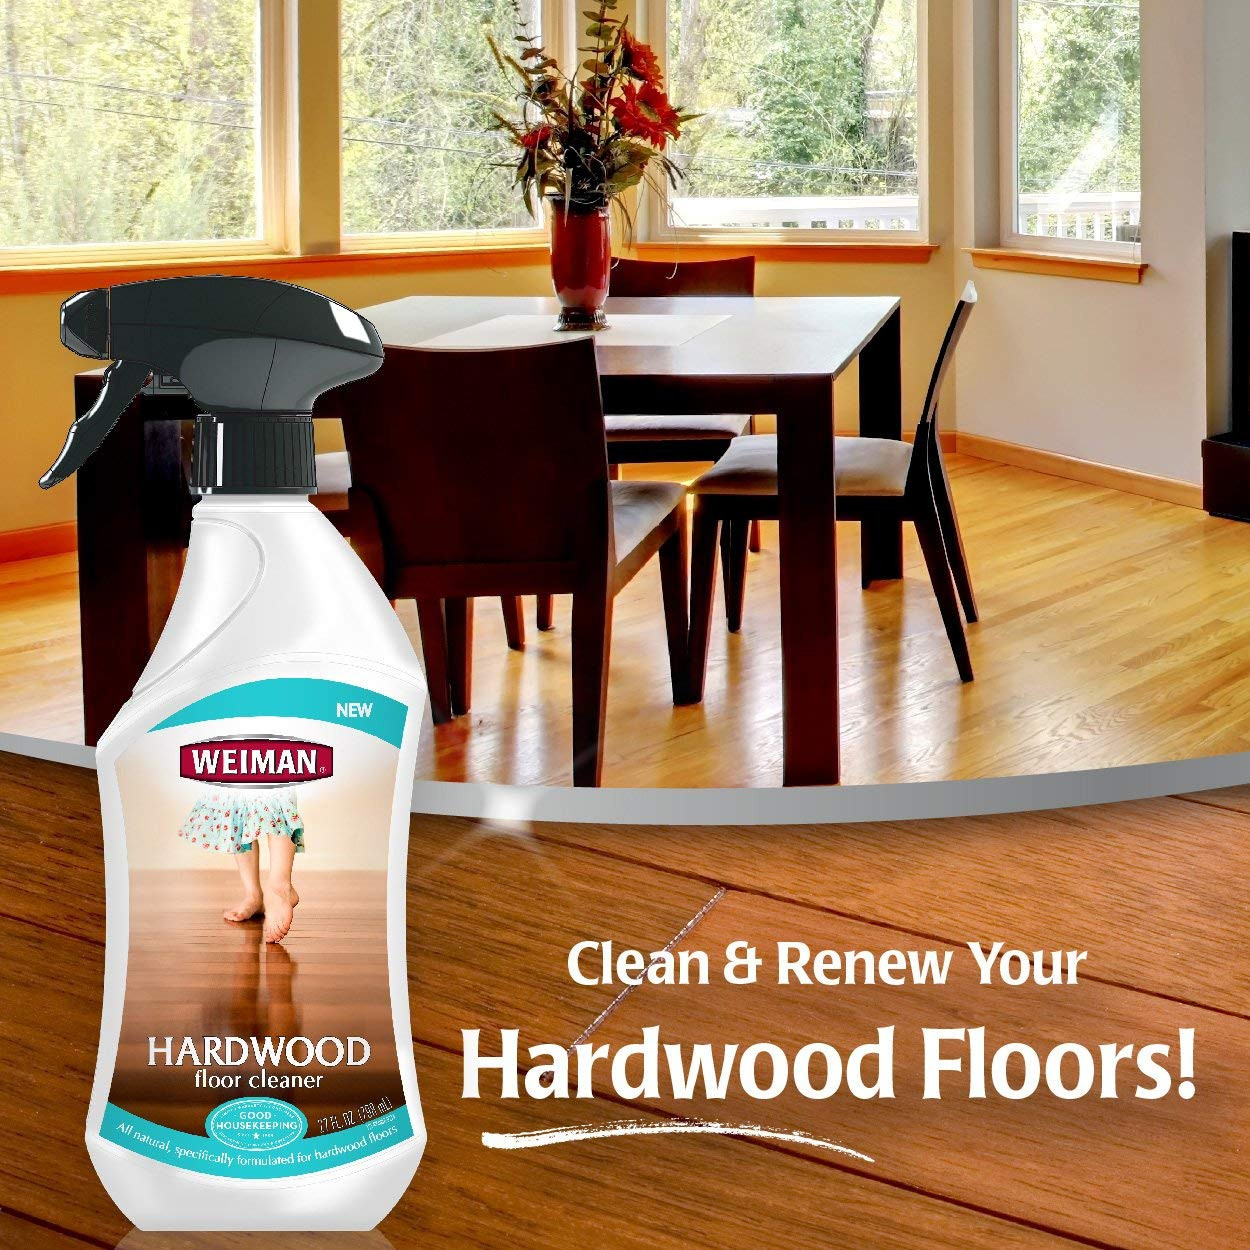 hoover hardwood floor cleaner of amazon com weiman hardwood floor cleaner surface safe no harsh with amazon com weiman hardwood floor cleaner surface safe no harsh scent safe for use around kids and pets residue free 27 oz trigger home kitchen